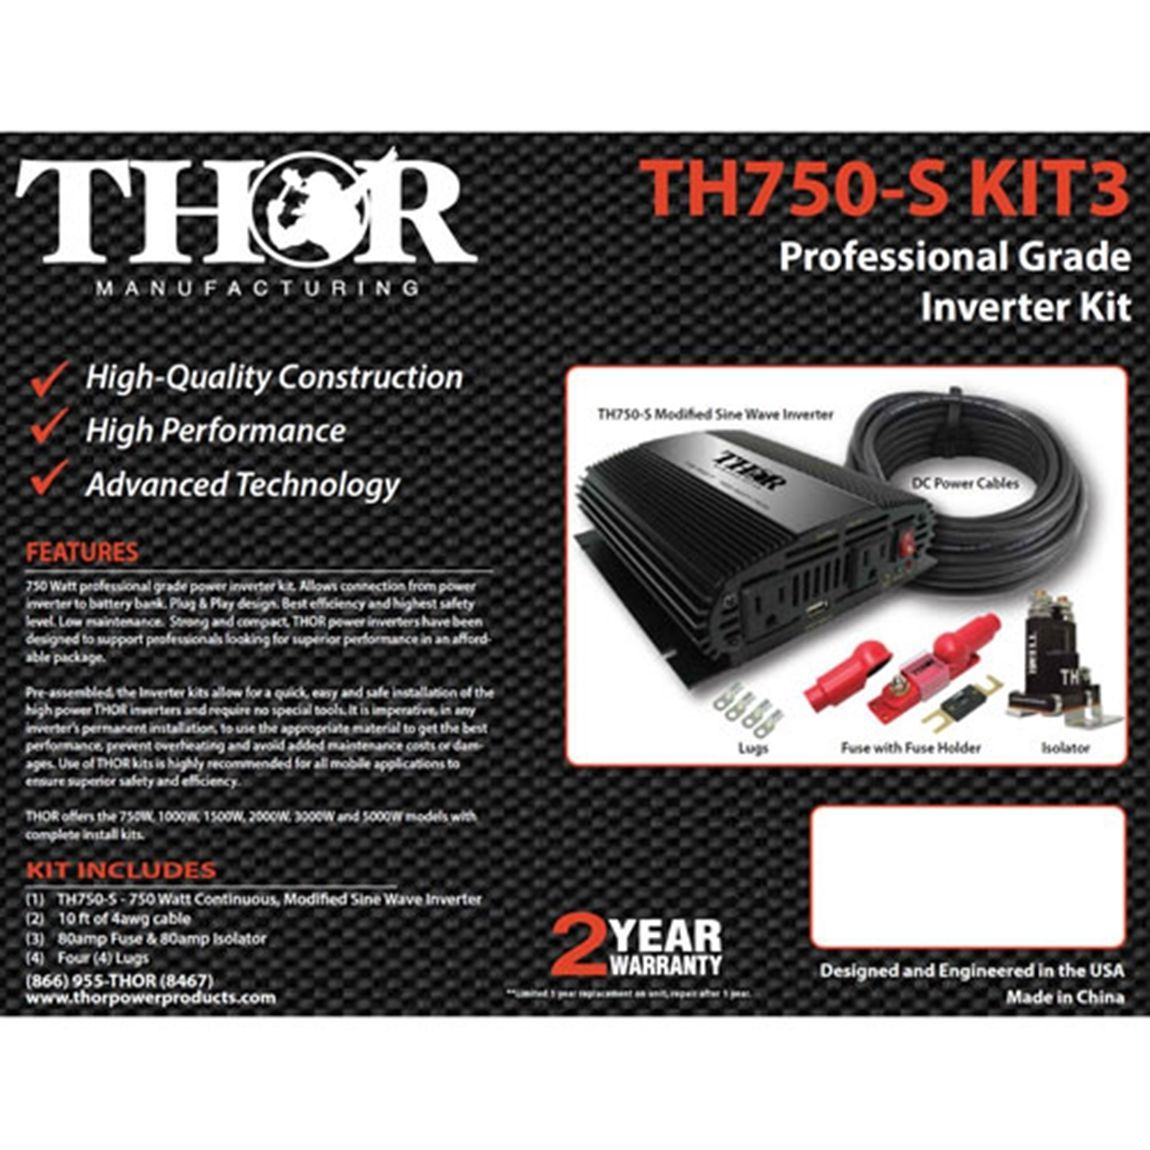 Fuses And Fuse Holders Thor Th750 S Kit3 With 10 Ft Of Addacircuit Mini Blade Holder 20amp Red